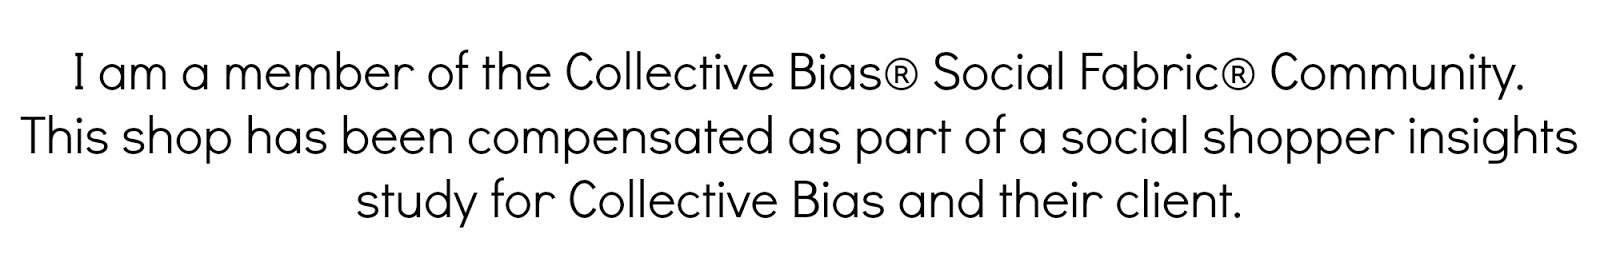 I am a member of the Collective Bias Social Fabric Community. This shop has been compensated as part of a social shopper insights study for Collective Bias and their client.